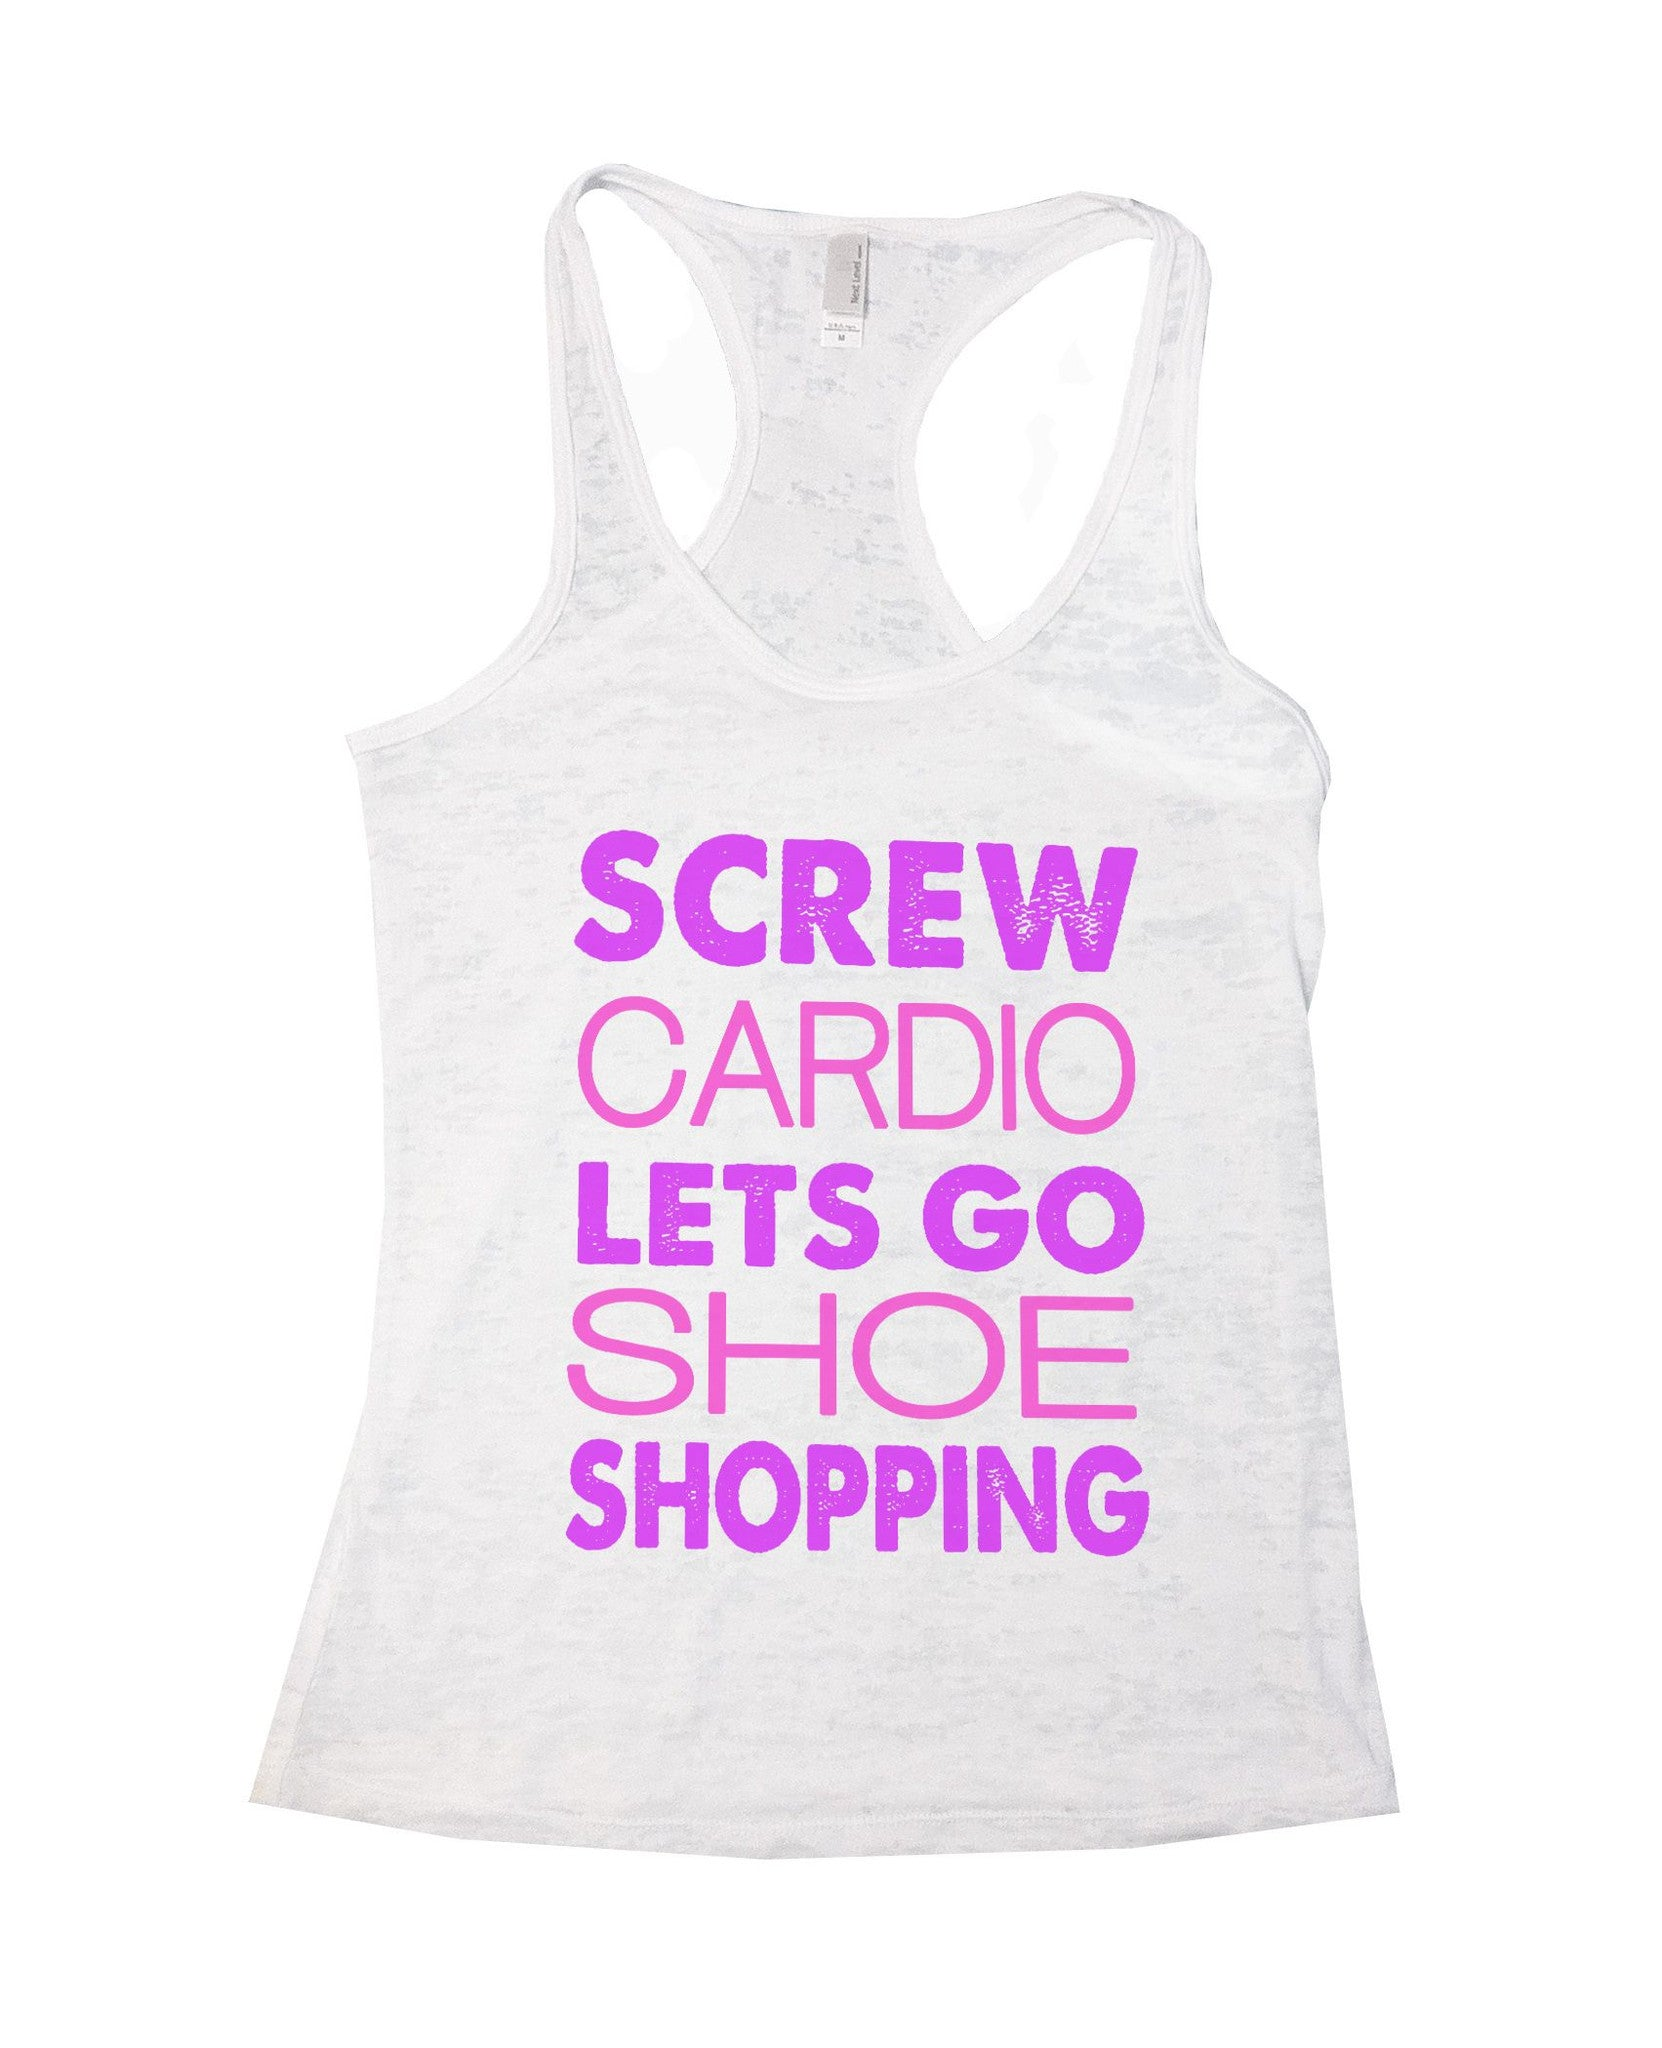 Screw Cardio Lets Go Shoe Shopping Burnout Tank Top By BurnoutTankTops.com - 687 - Funny Shirts Tank Tops Burnouts and Triblends  - 2